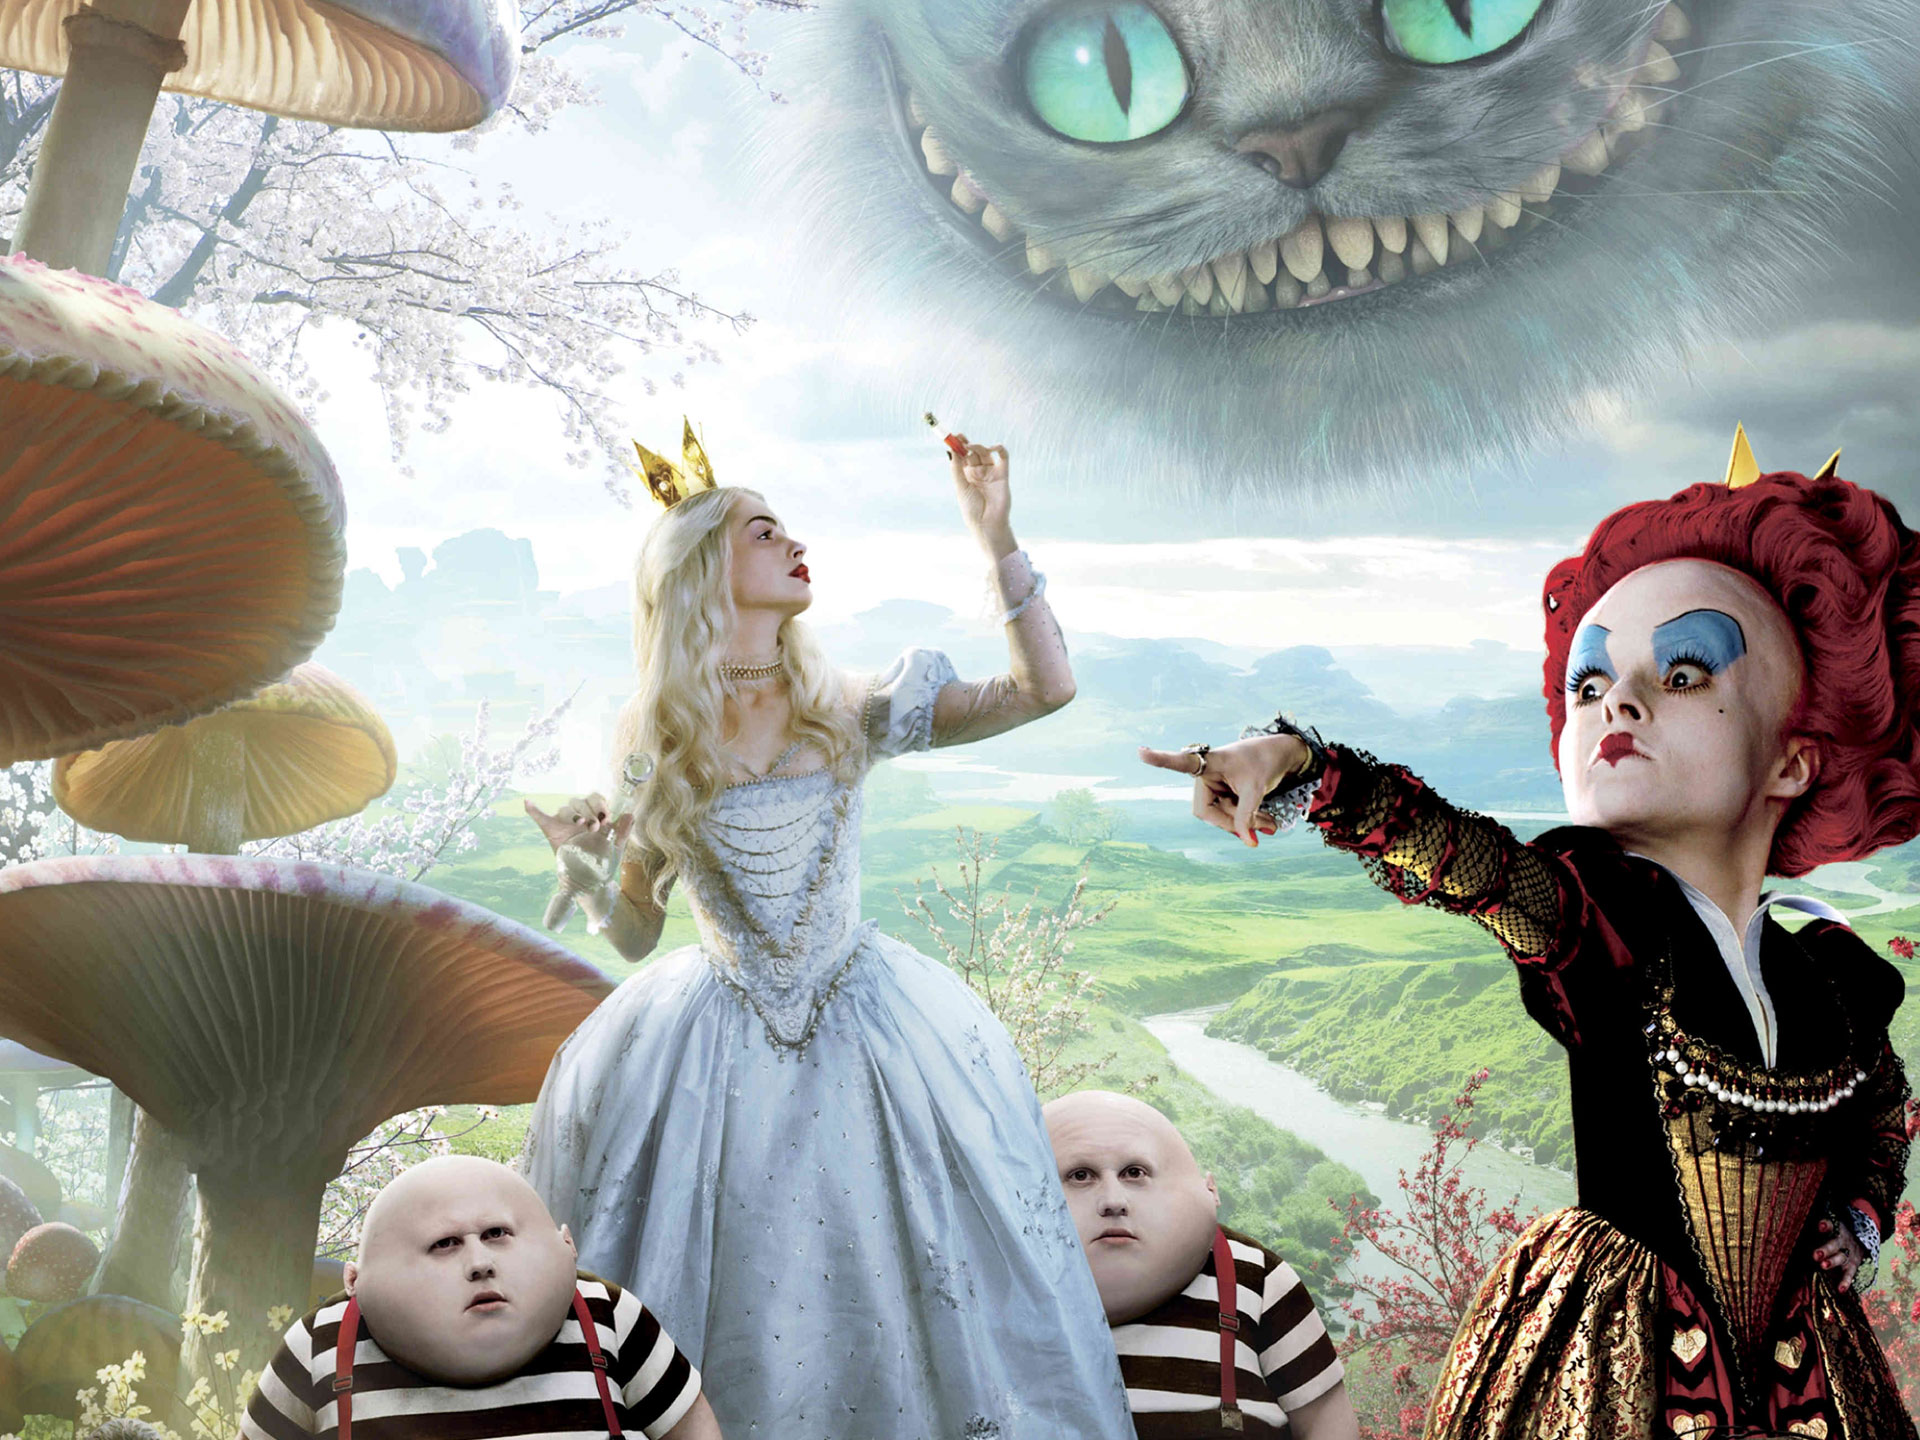 2010 Alice in Wonderland 490.17 Kb